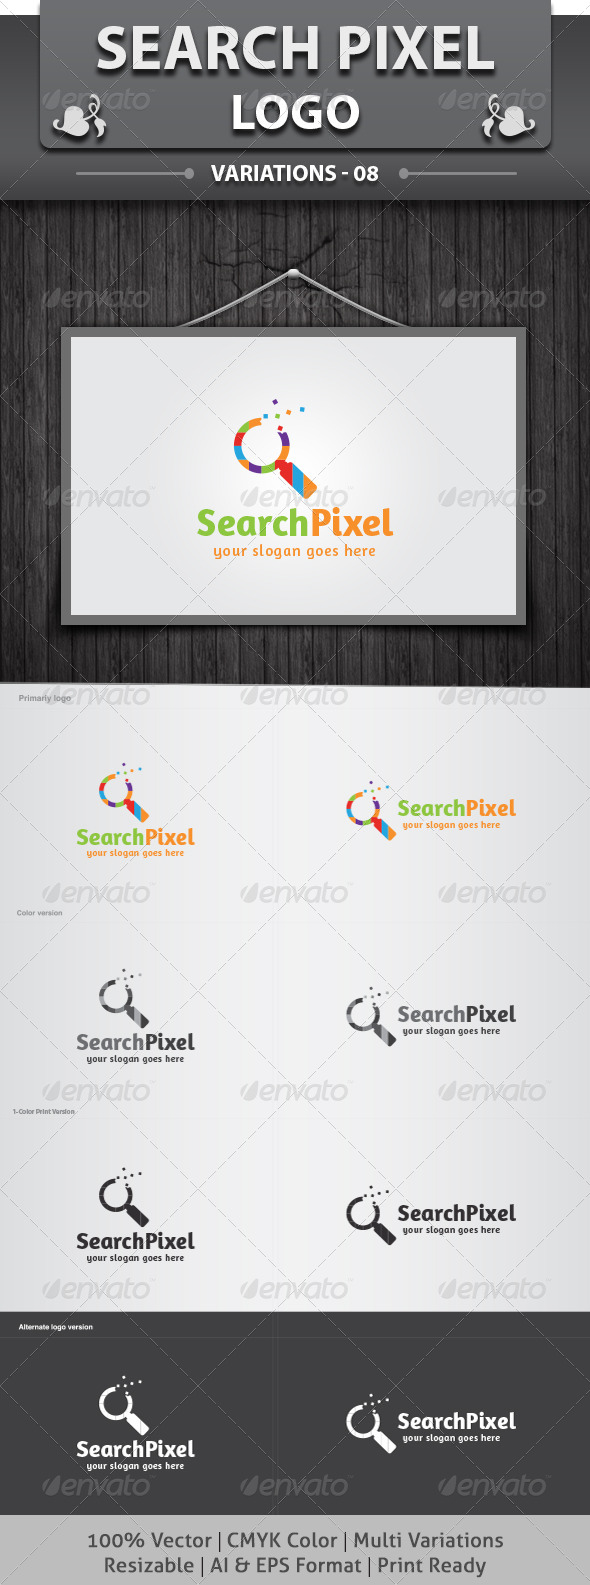 Search Pixel Logo - Objects Logo Templates